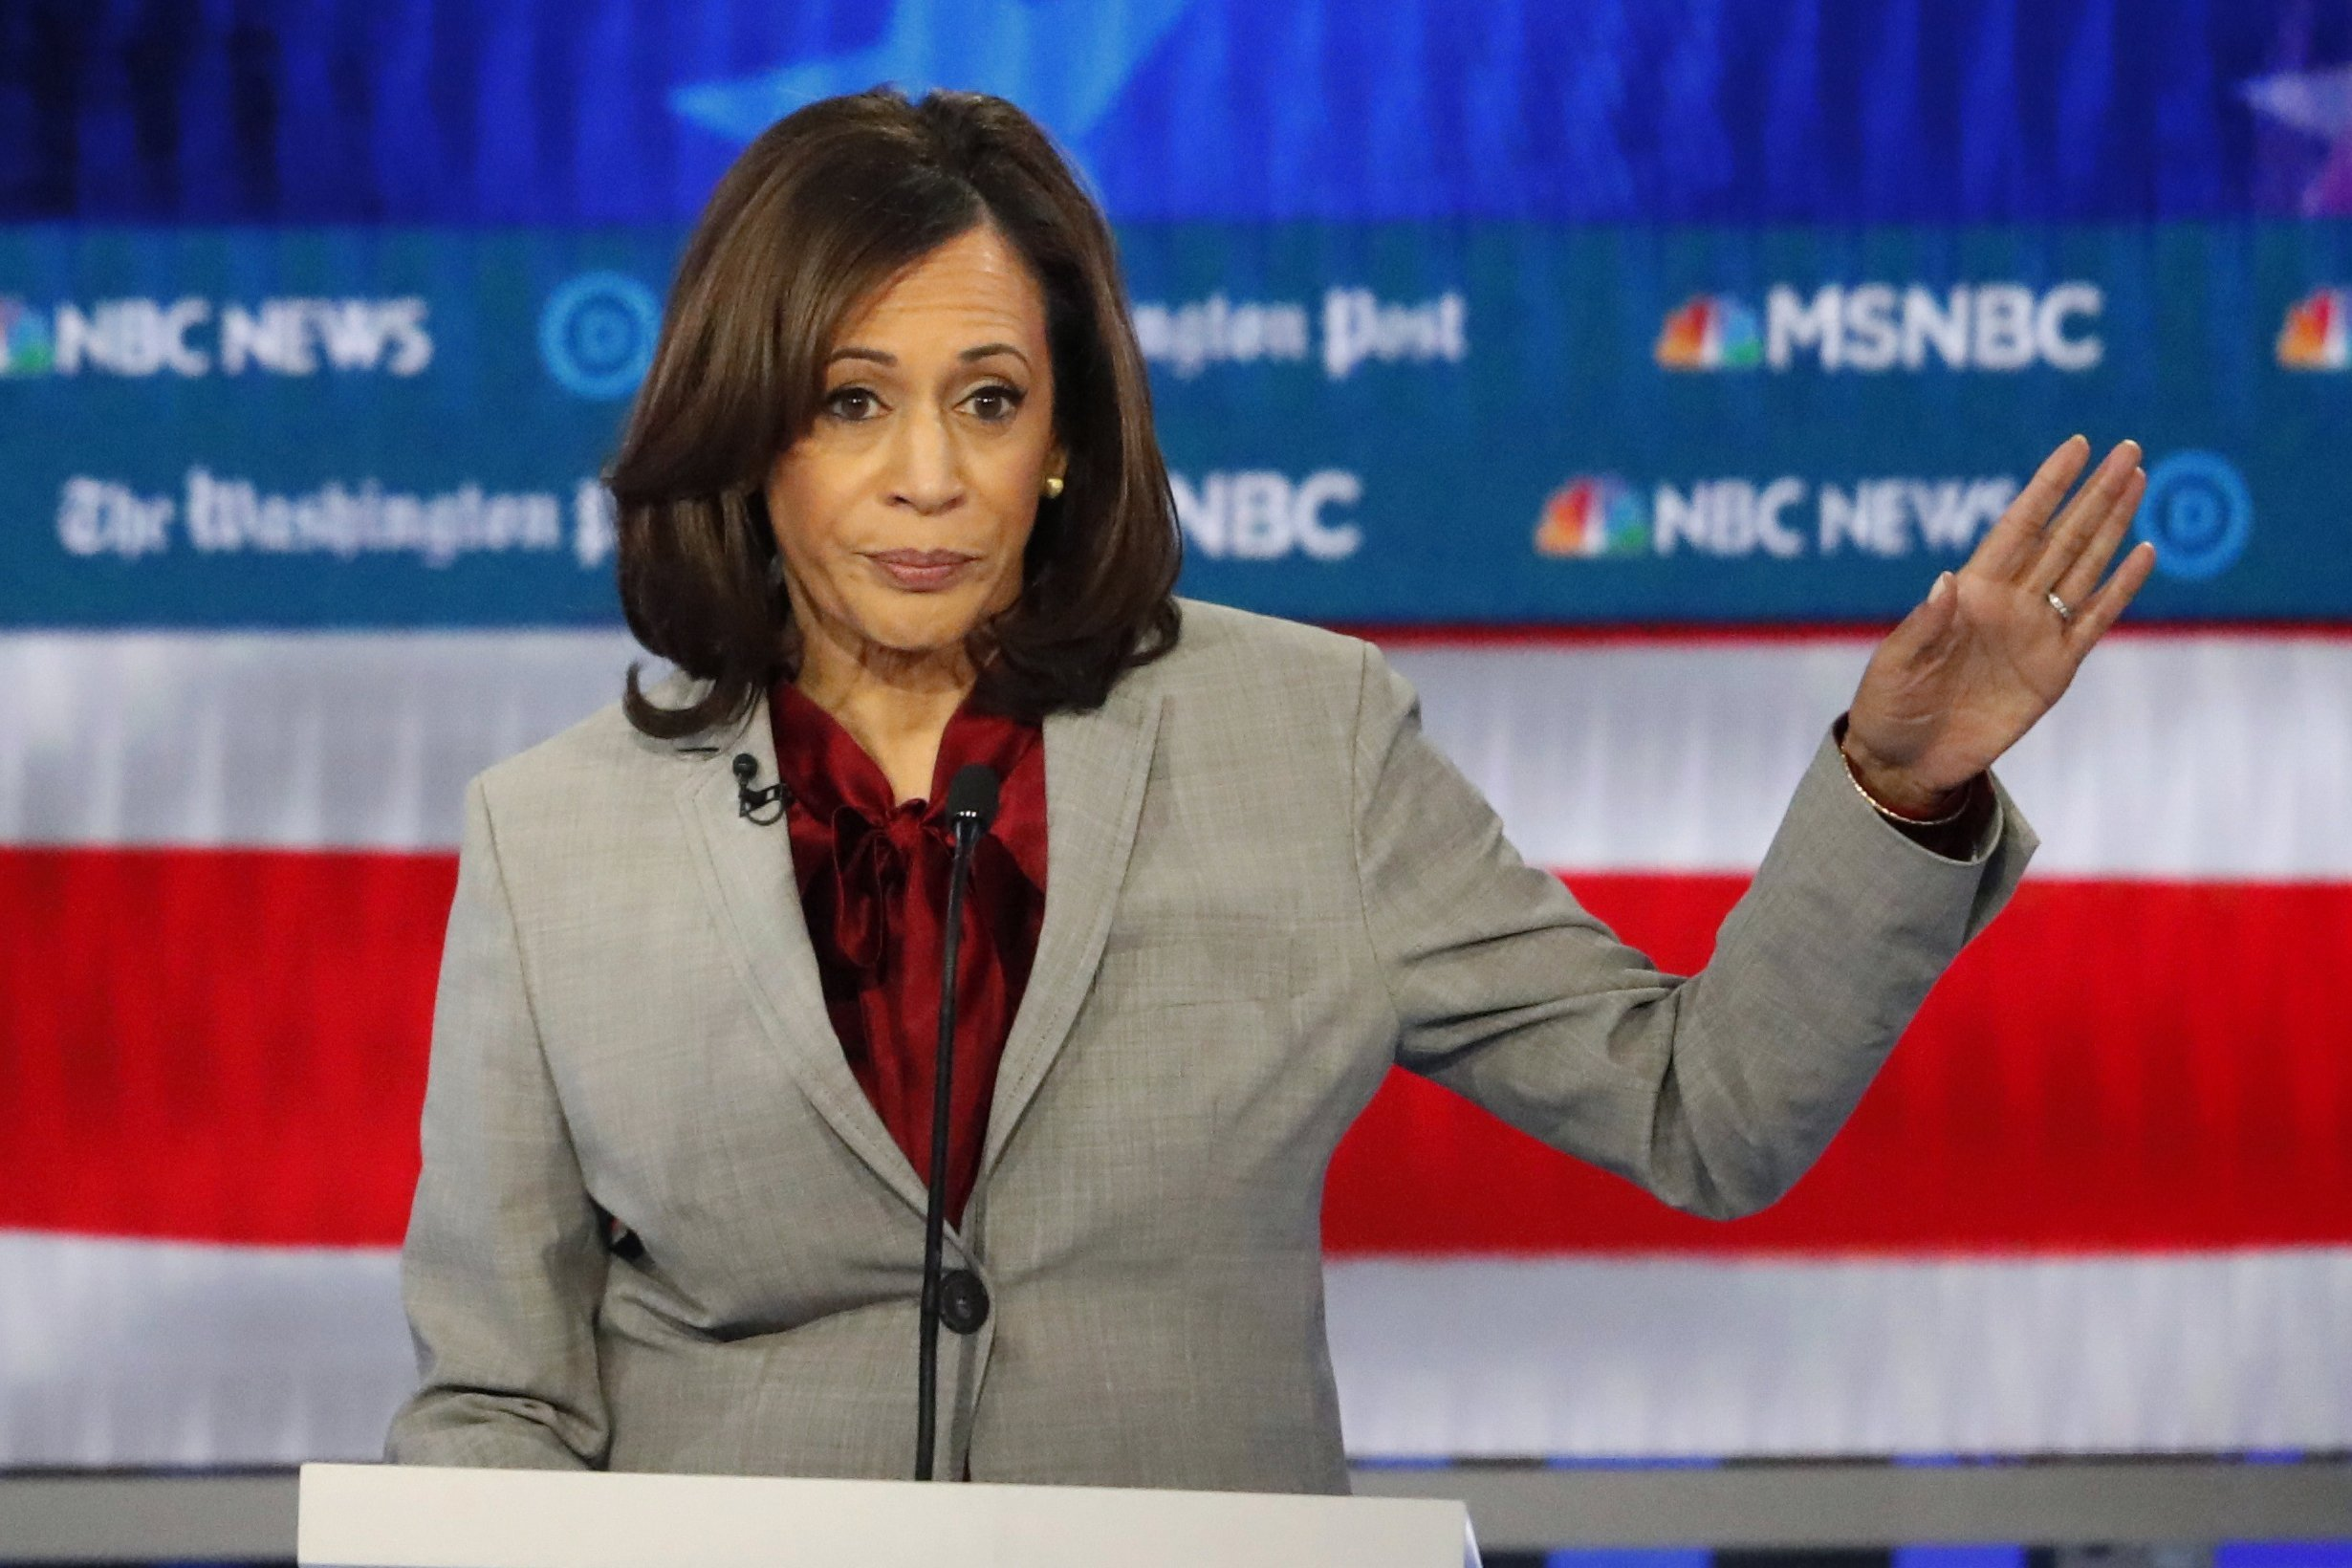 Democratic Party vice presidential nominee Kamala Harris waves in front of a red, white, and blue backdrop.